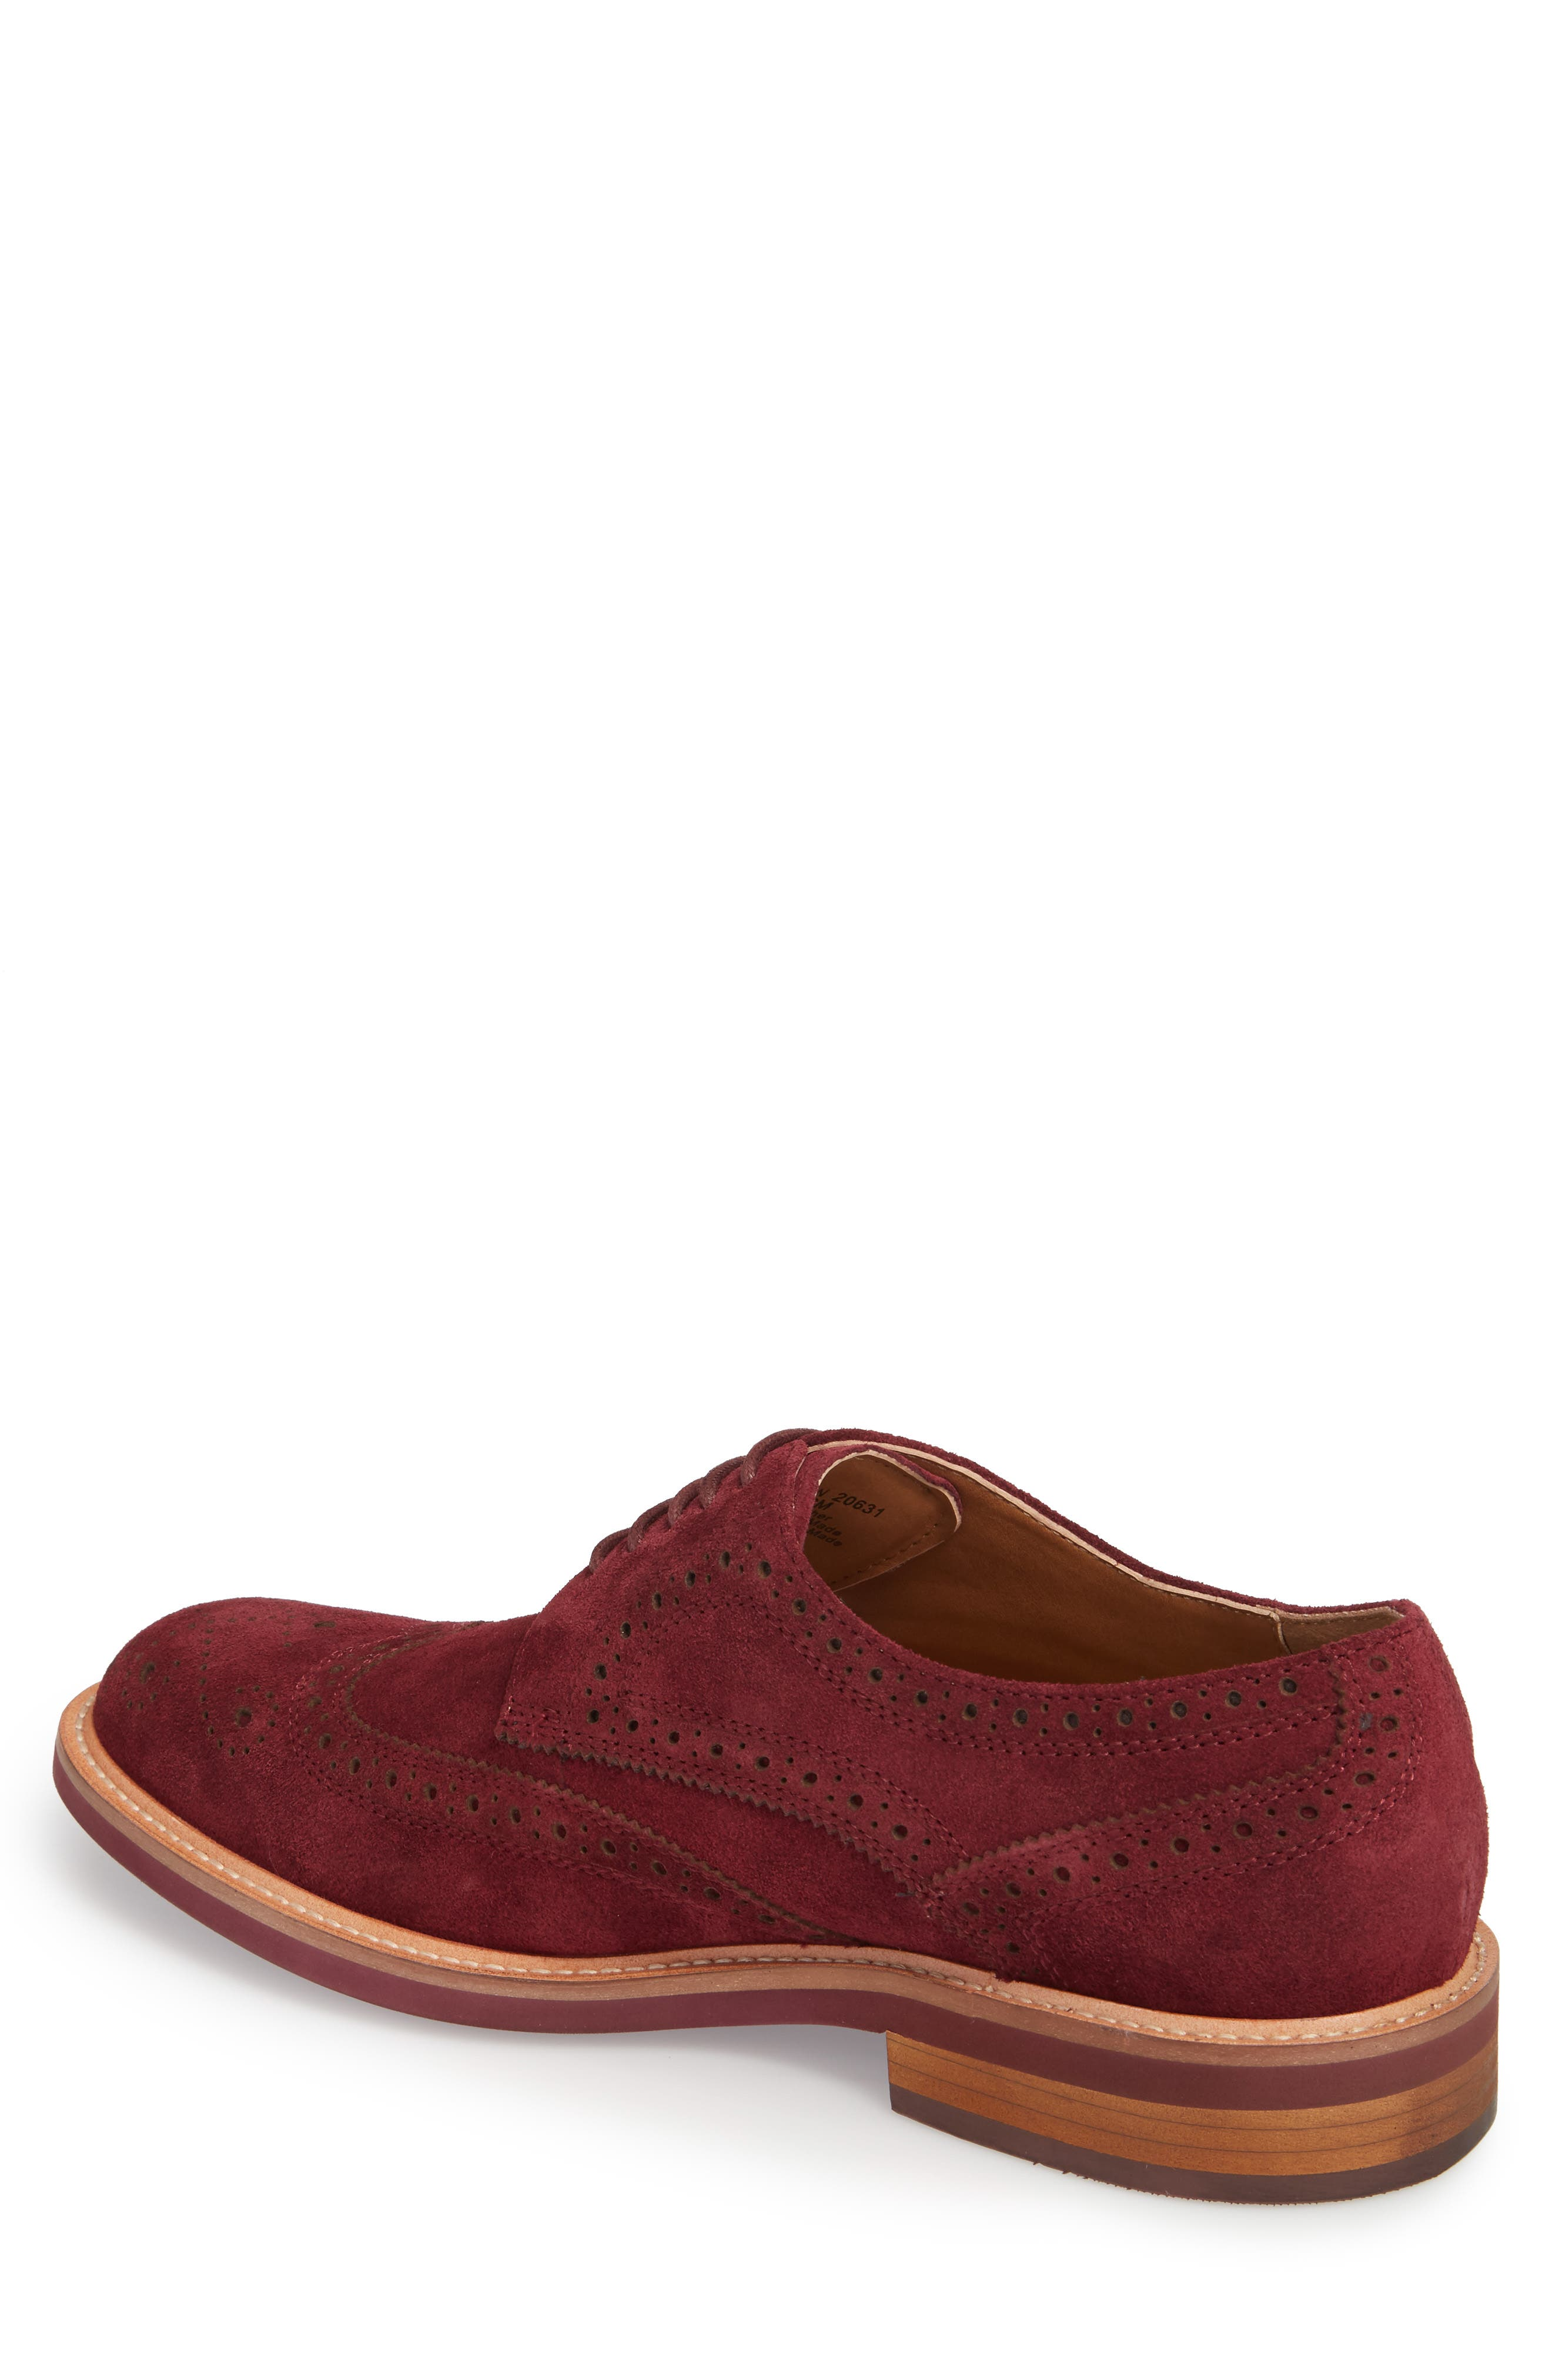 Kenneth Cole Reaction Wingtip,                             Alternate thumbnail 8, color,